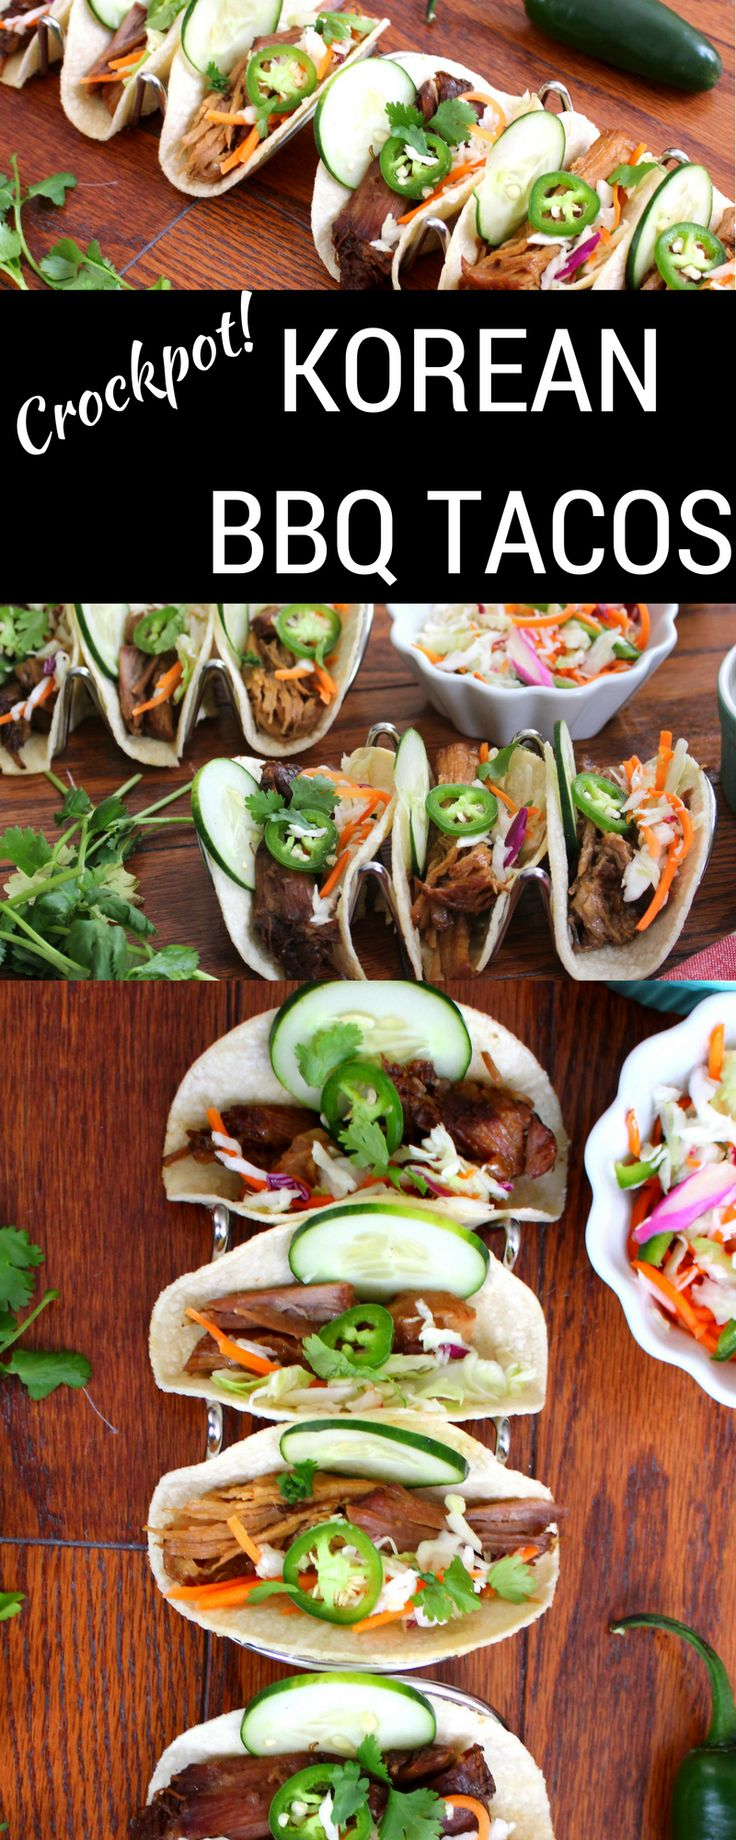 Crockpot Korean Barbecue Tacos with Asian Slaw via @Ally\\\'s Cooking